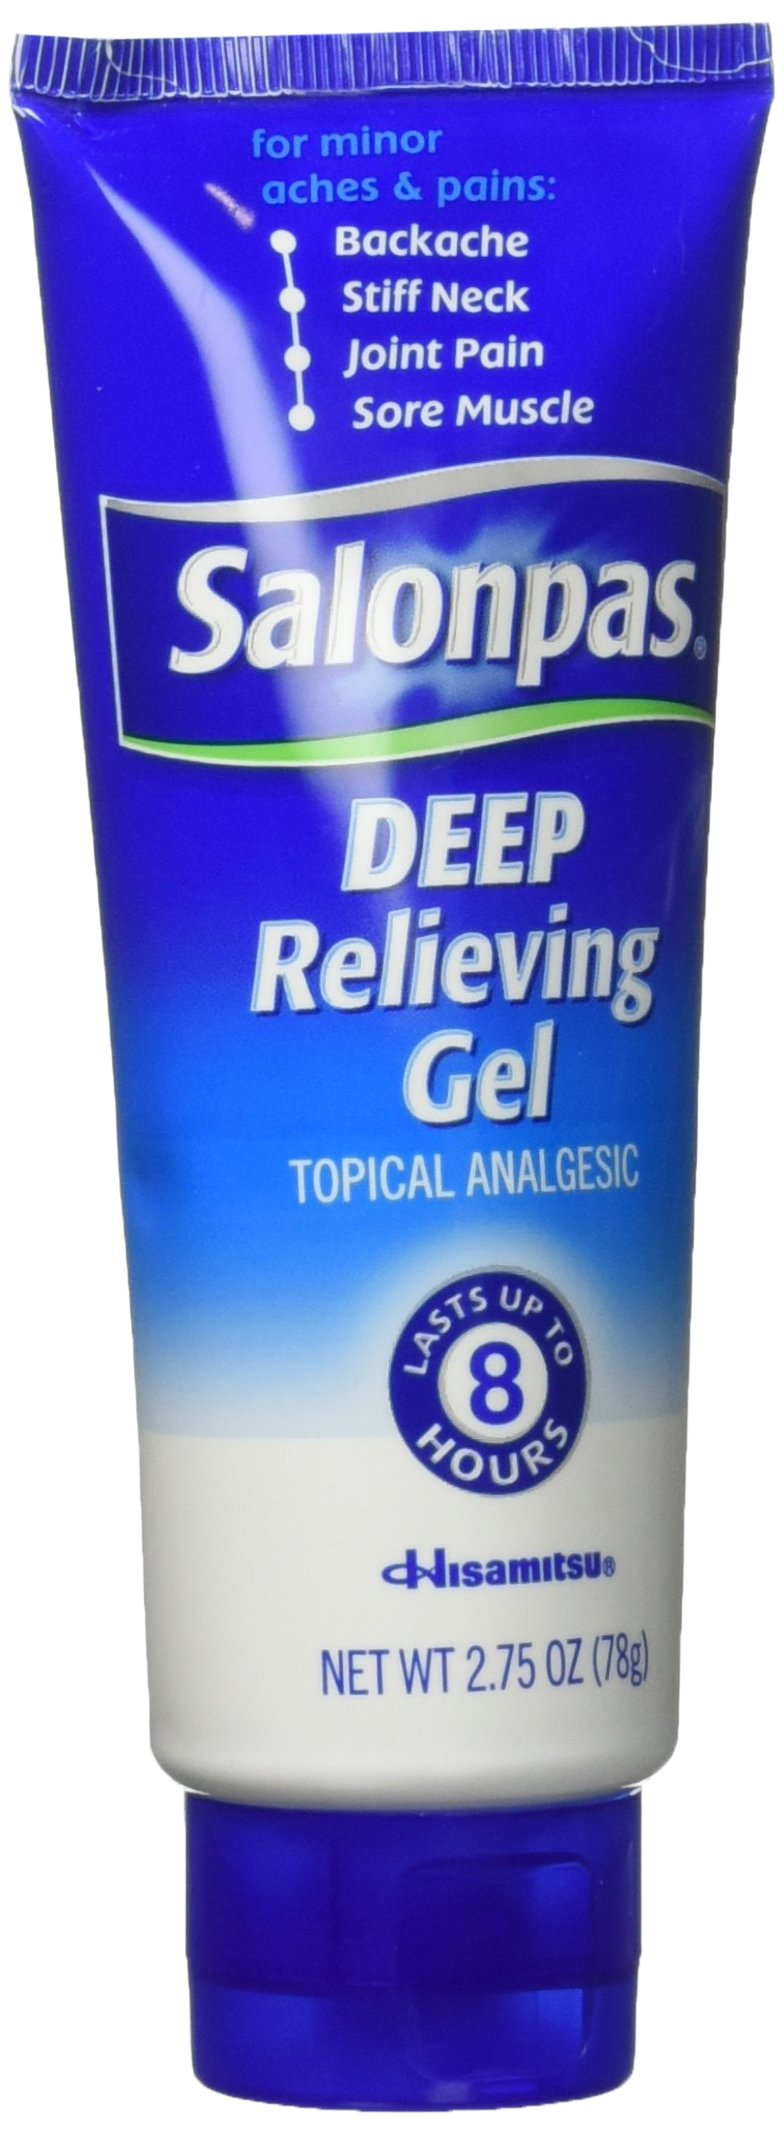 Salonpas Deep Pain Relieving Gel, 2.75 Oz (Pack of 2)